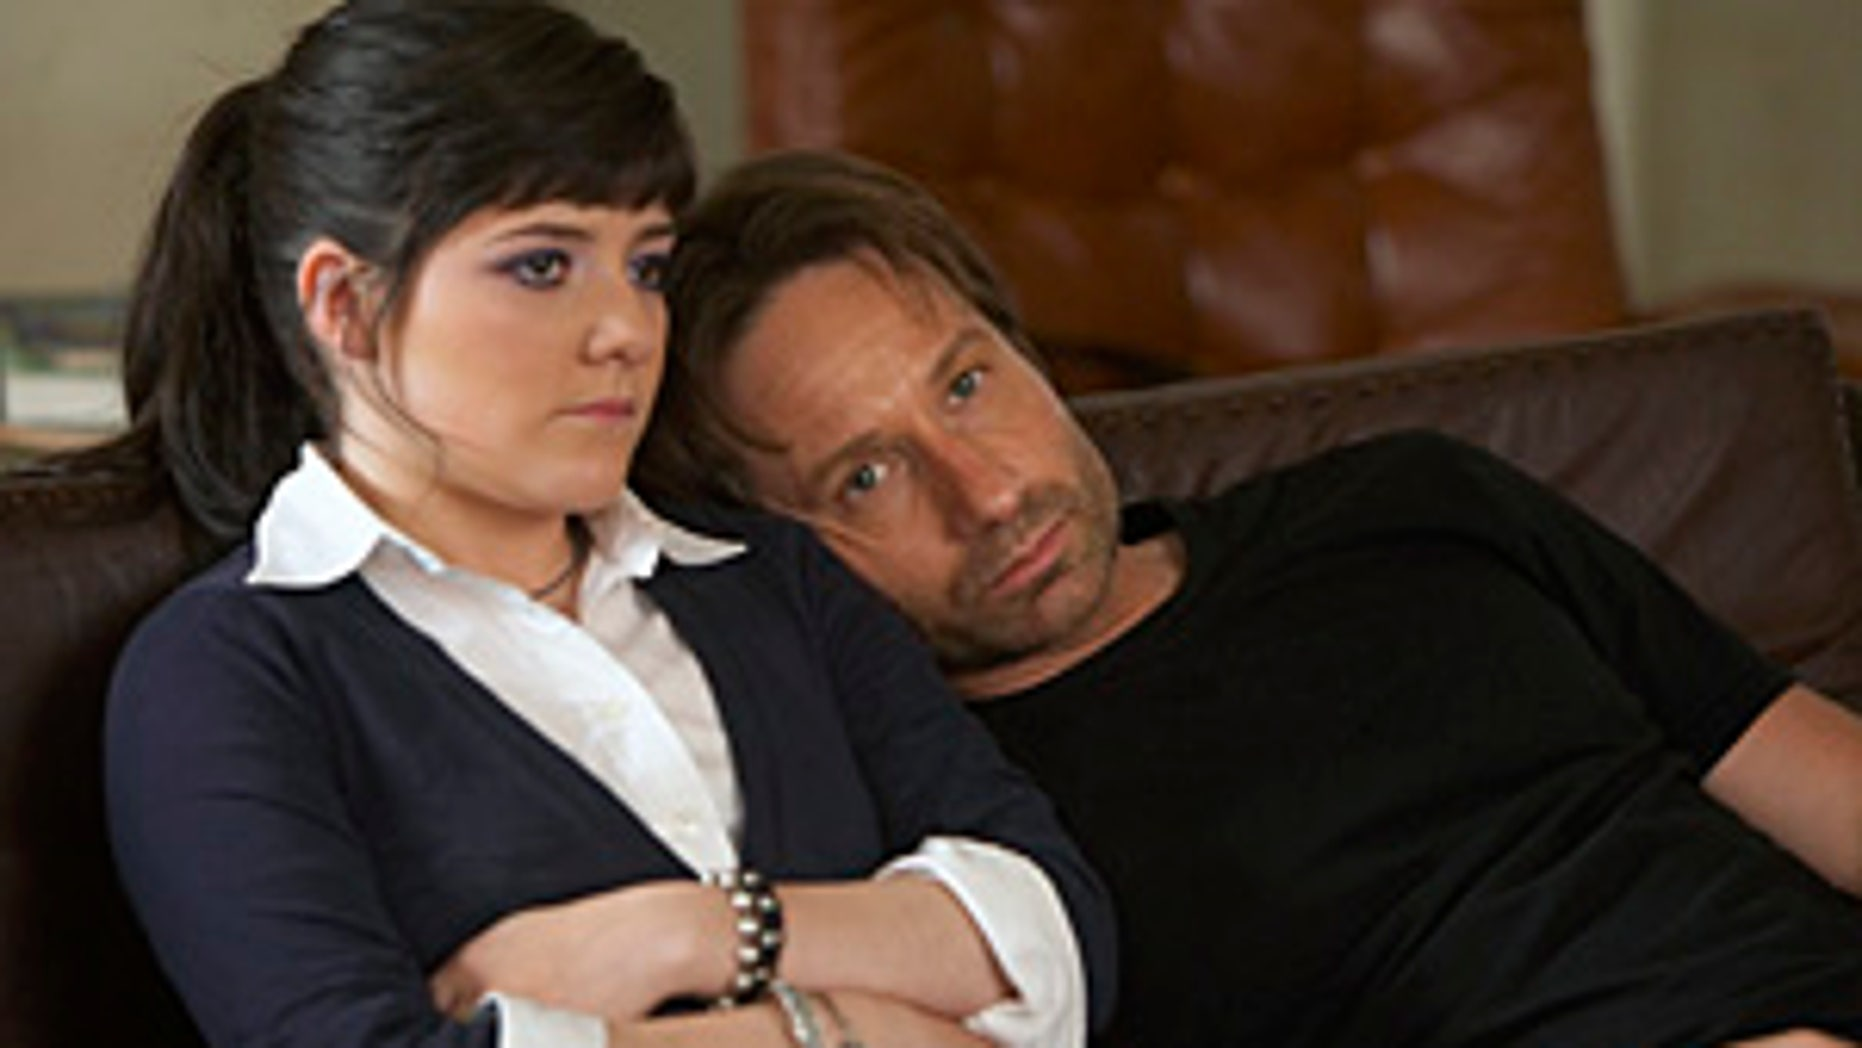 Madeleine Martin as Becca and David Duchovny as Hank in Californication (Season 3, Episode 8) - Photo: Jordin Althaus/Showtime - Photo ID: californication_308_0498